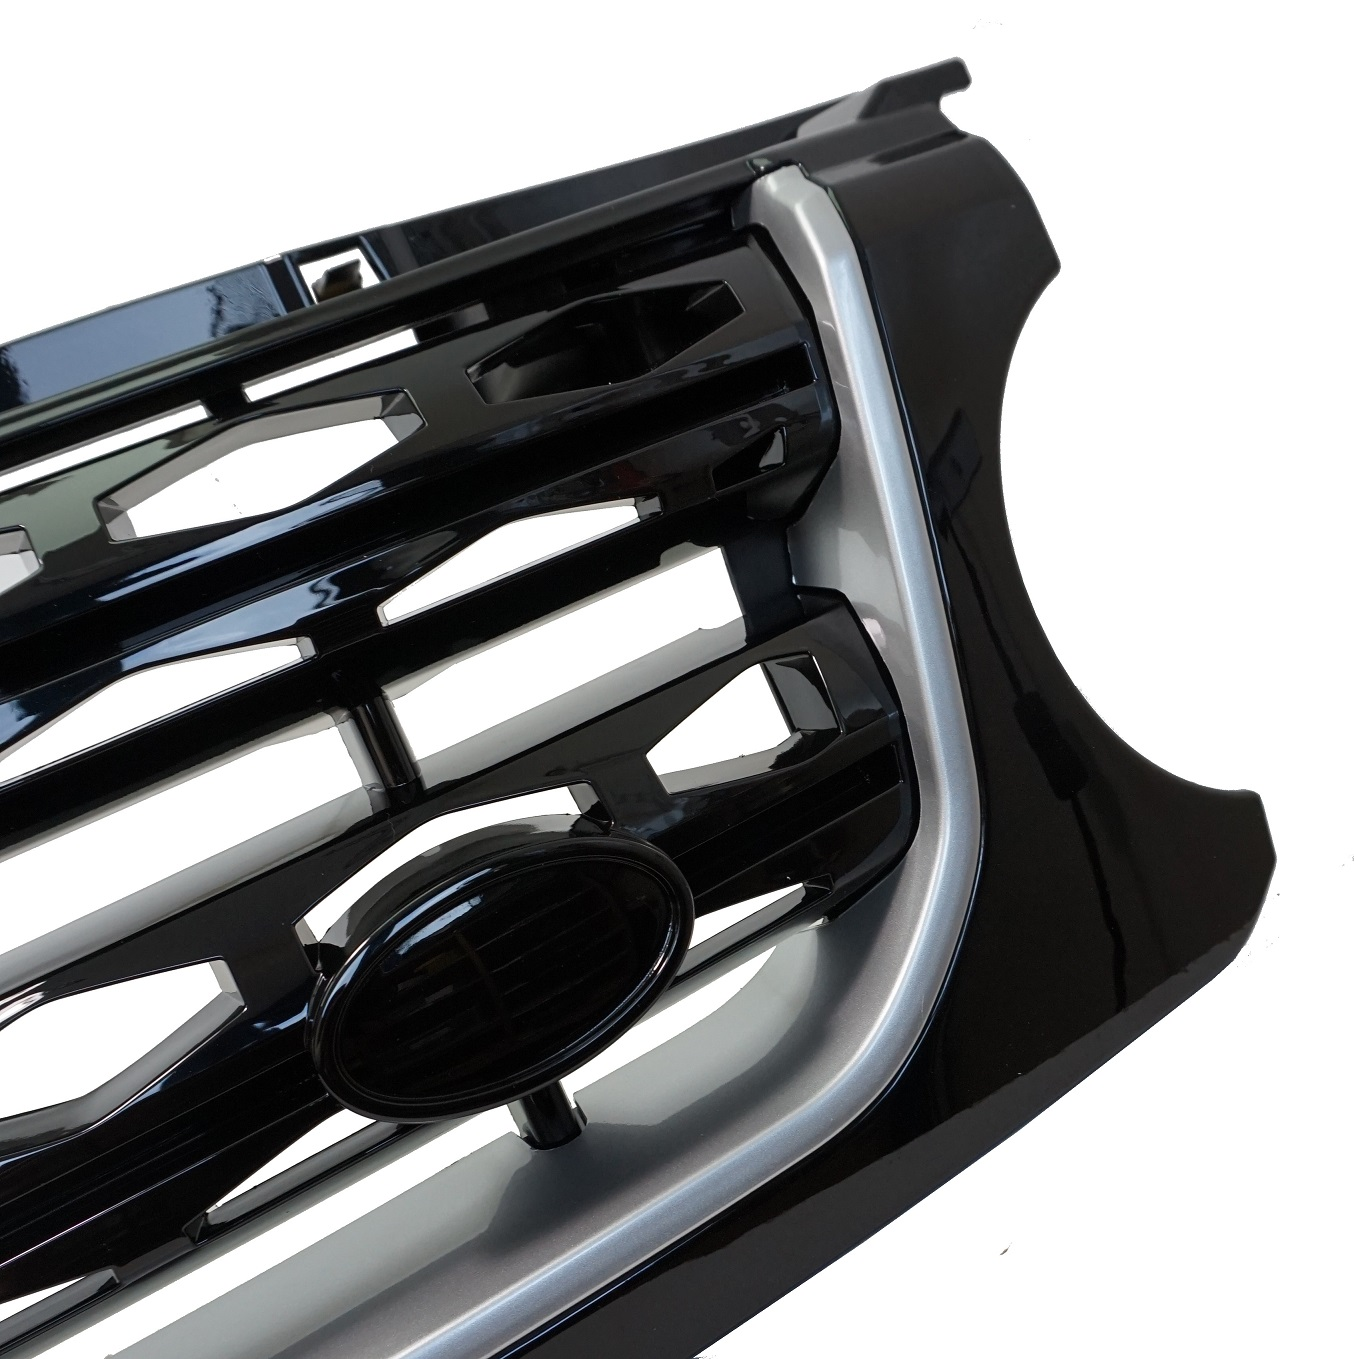 Black+Silver Disco4 Facelift Style Front Grille For Land